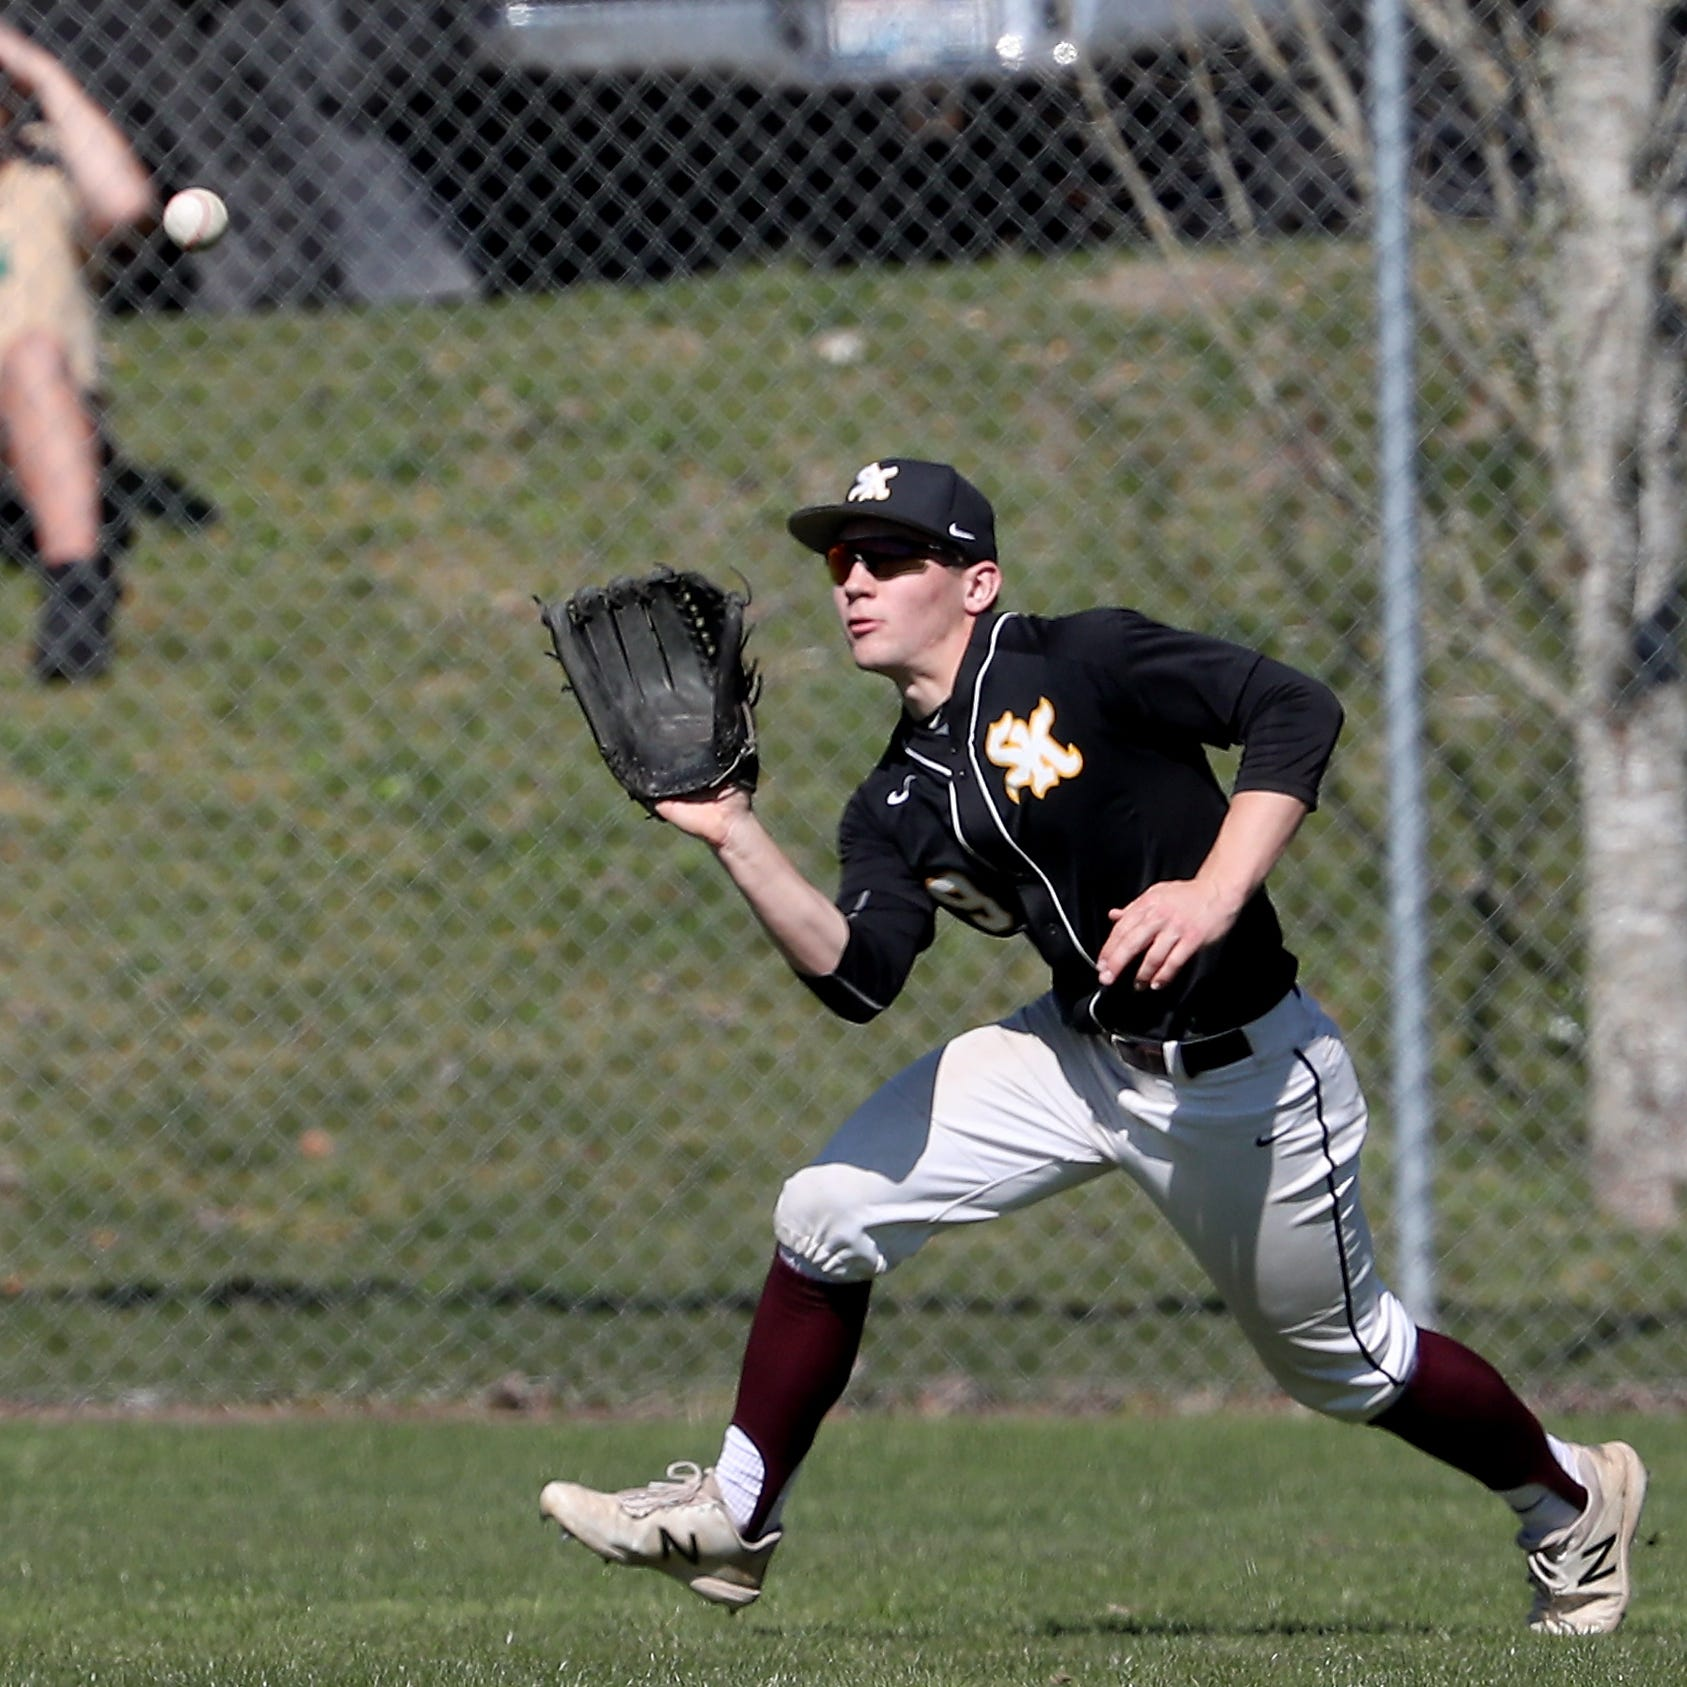 South Kitsap baseball embracing a 'do work' mentality